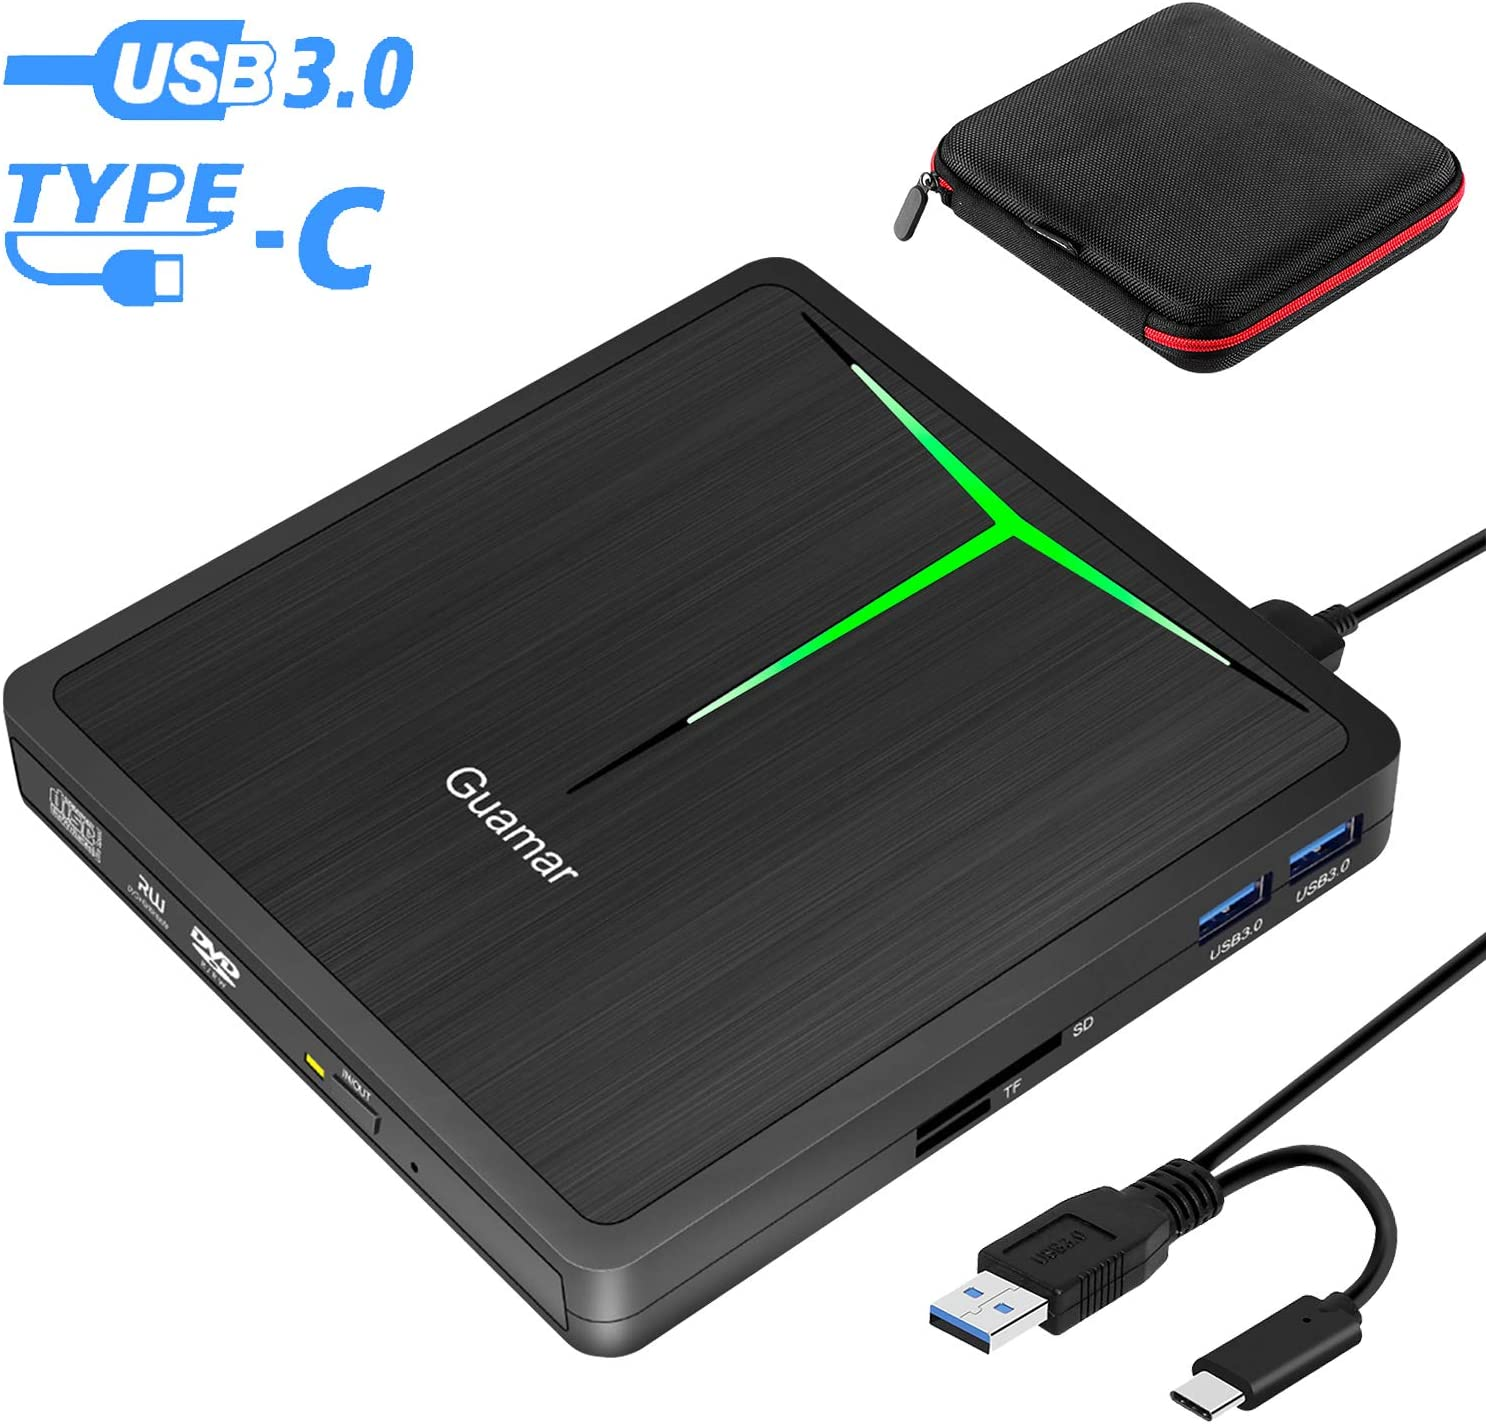 External DVD Drive Guamar 5 in 1 USB 3.0 USB C CD/DVD +/- RW Burner Writer Player Portable Optical Drive for Laptop/MacBook/Desktop/Windows/PC Support SD/TF Card Reader/USB 3.0 Transfers (Black)